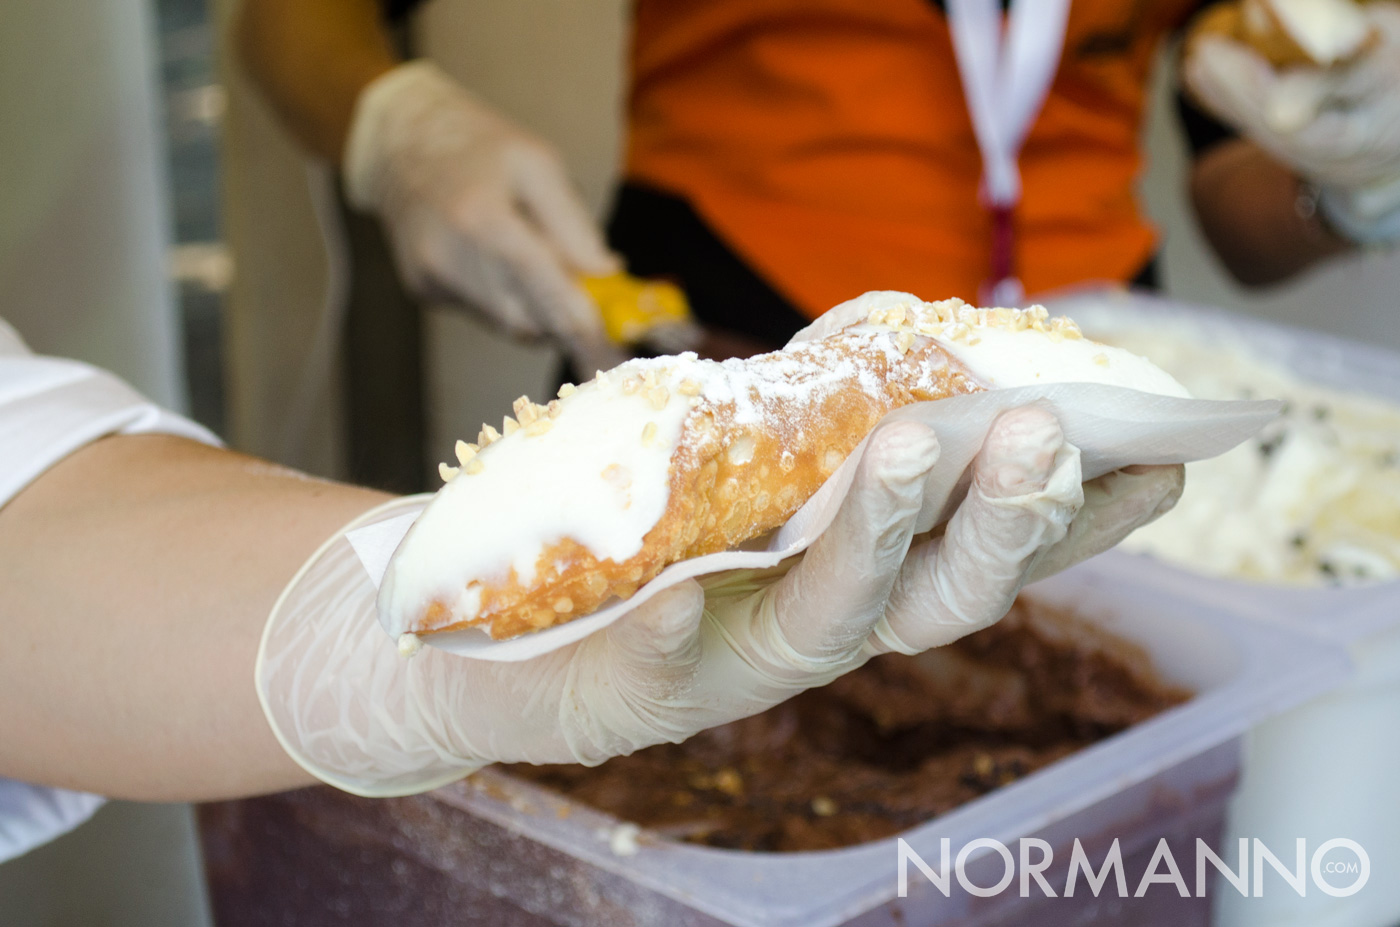 Cannolo siciliano ricotta - Messina Street Food Fest 2017